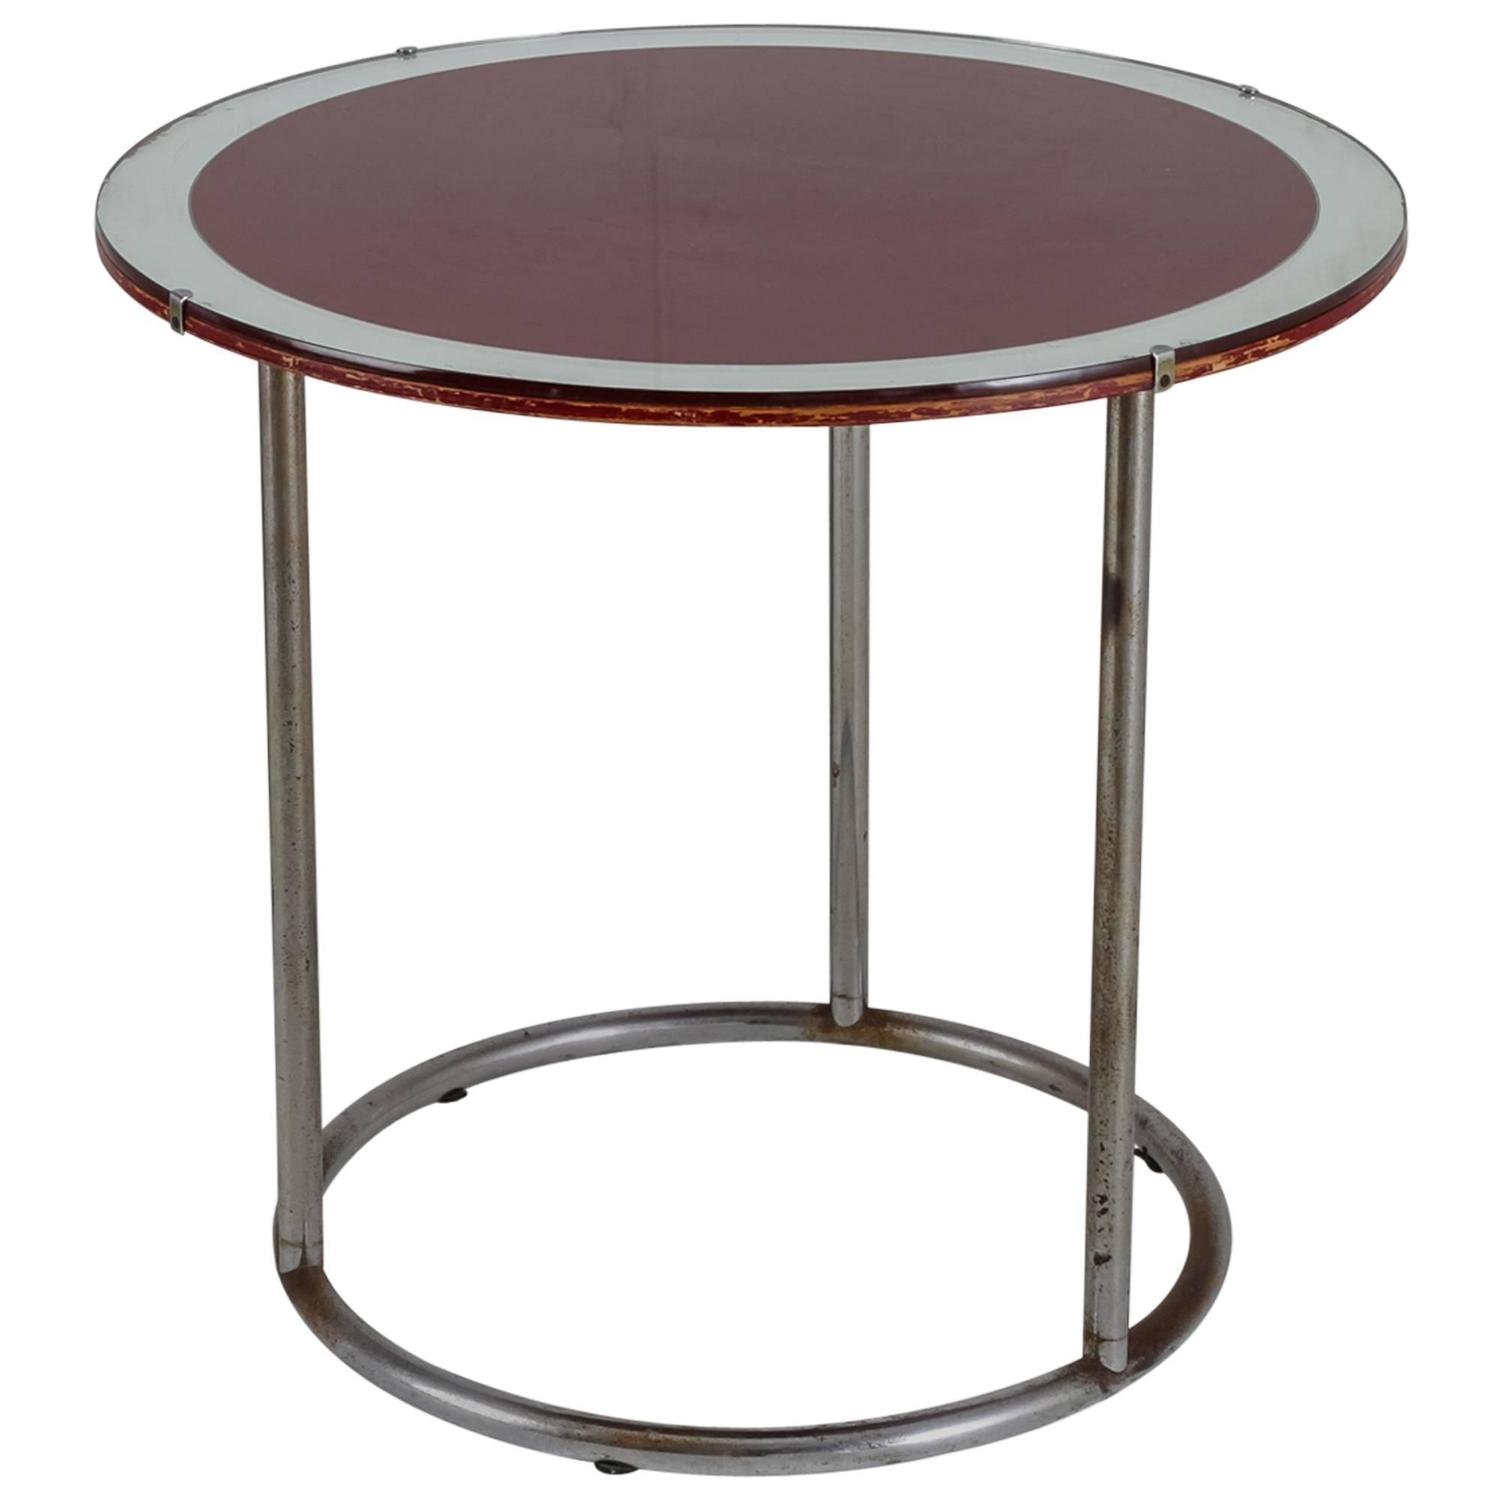 1920s Tubular Metal Table With Red Wood And Glass Top England For Sale At 1stdibs